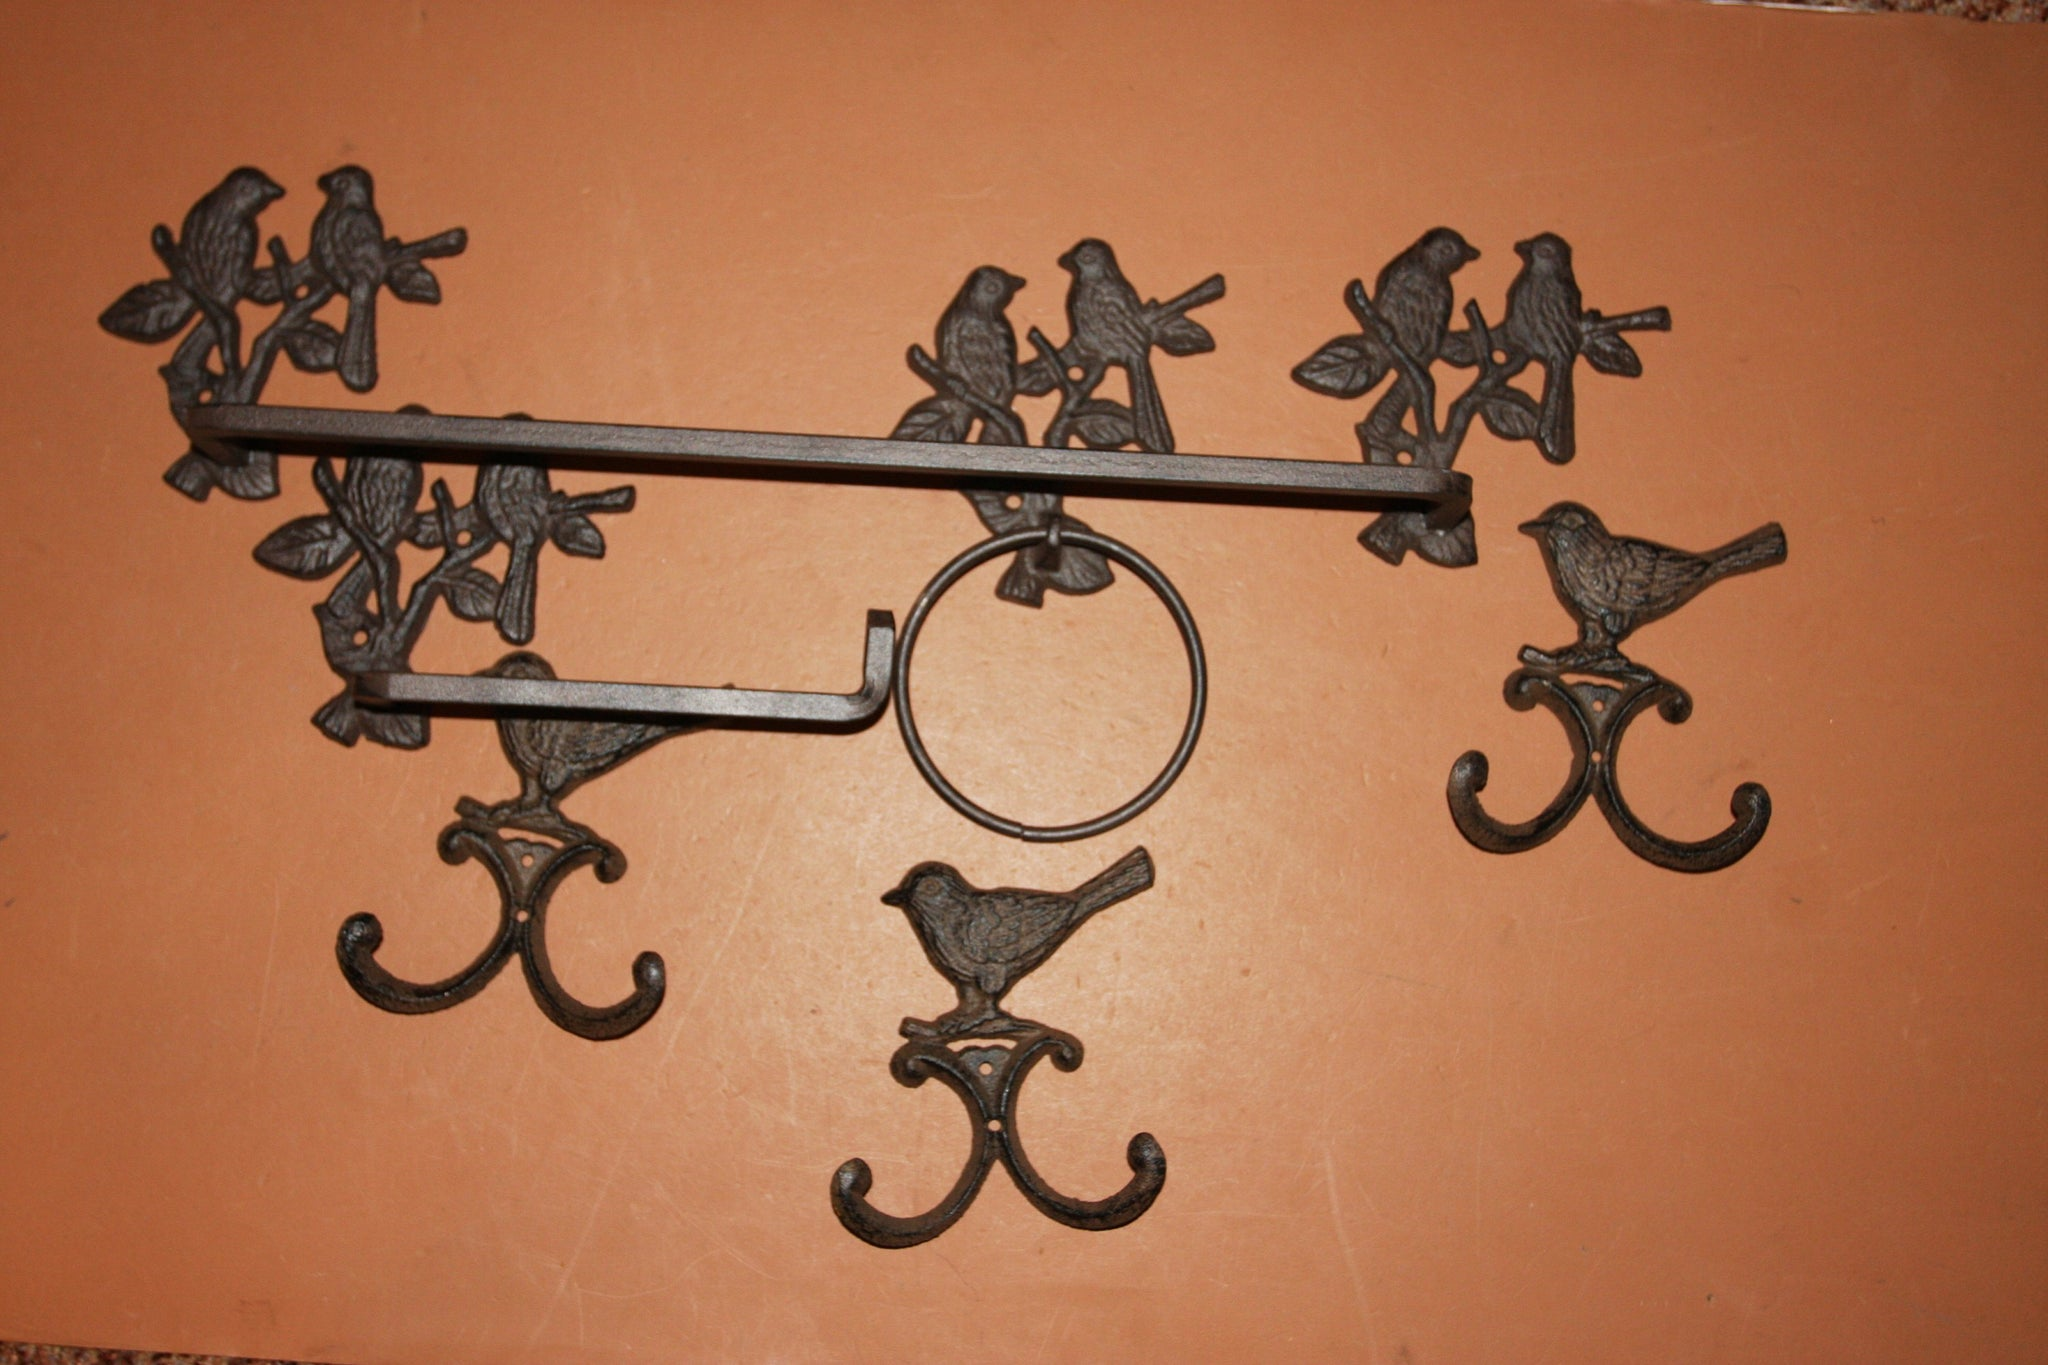 6) Wild Bird Bath Towel Bar Rack, Towel Ring, Robe Towel Hooks, Toilet Paper Holder